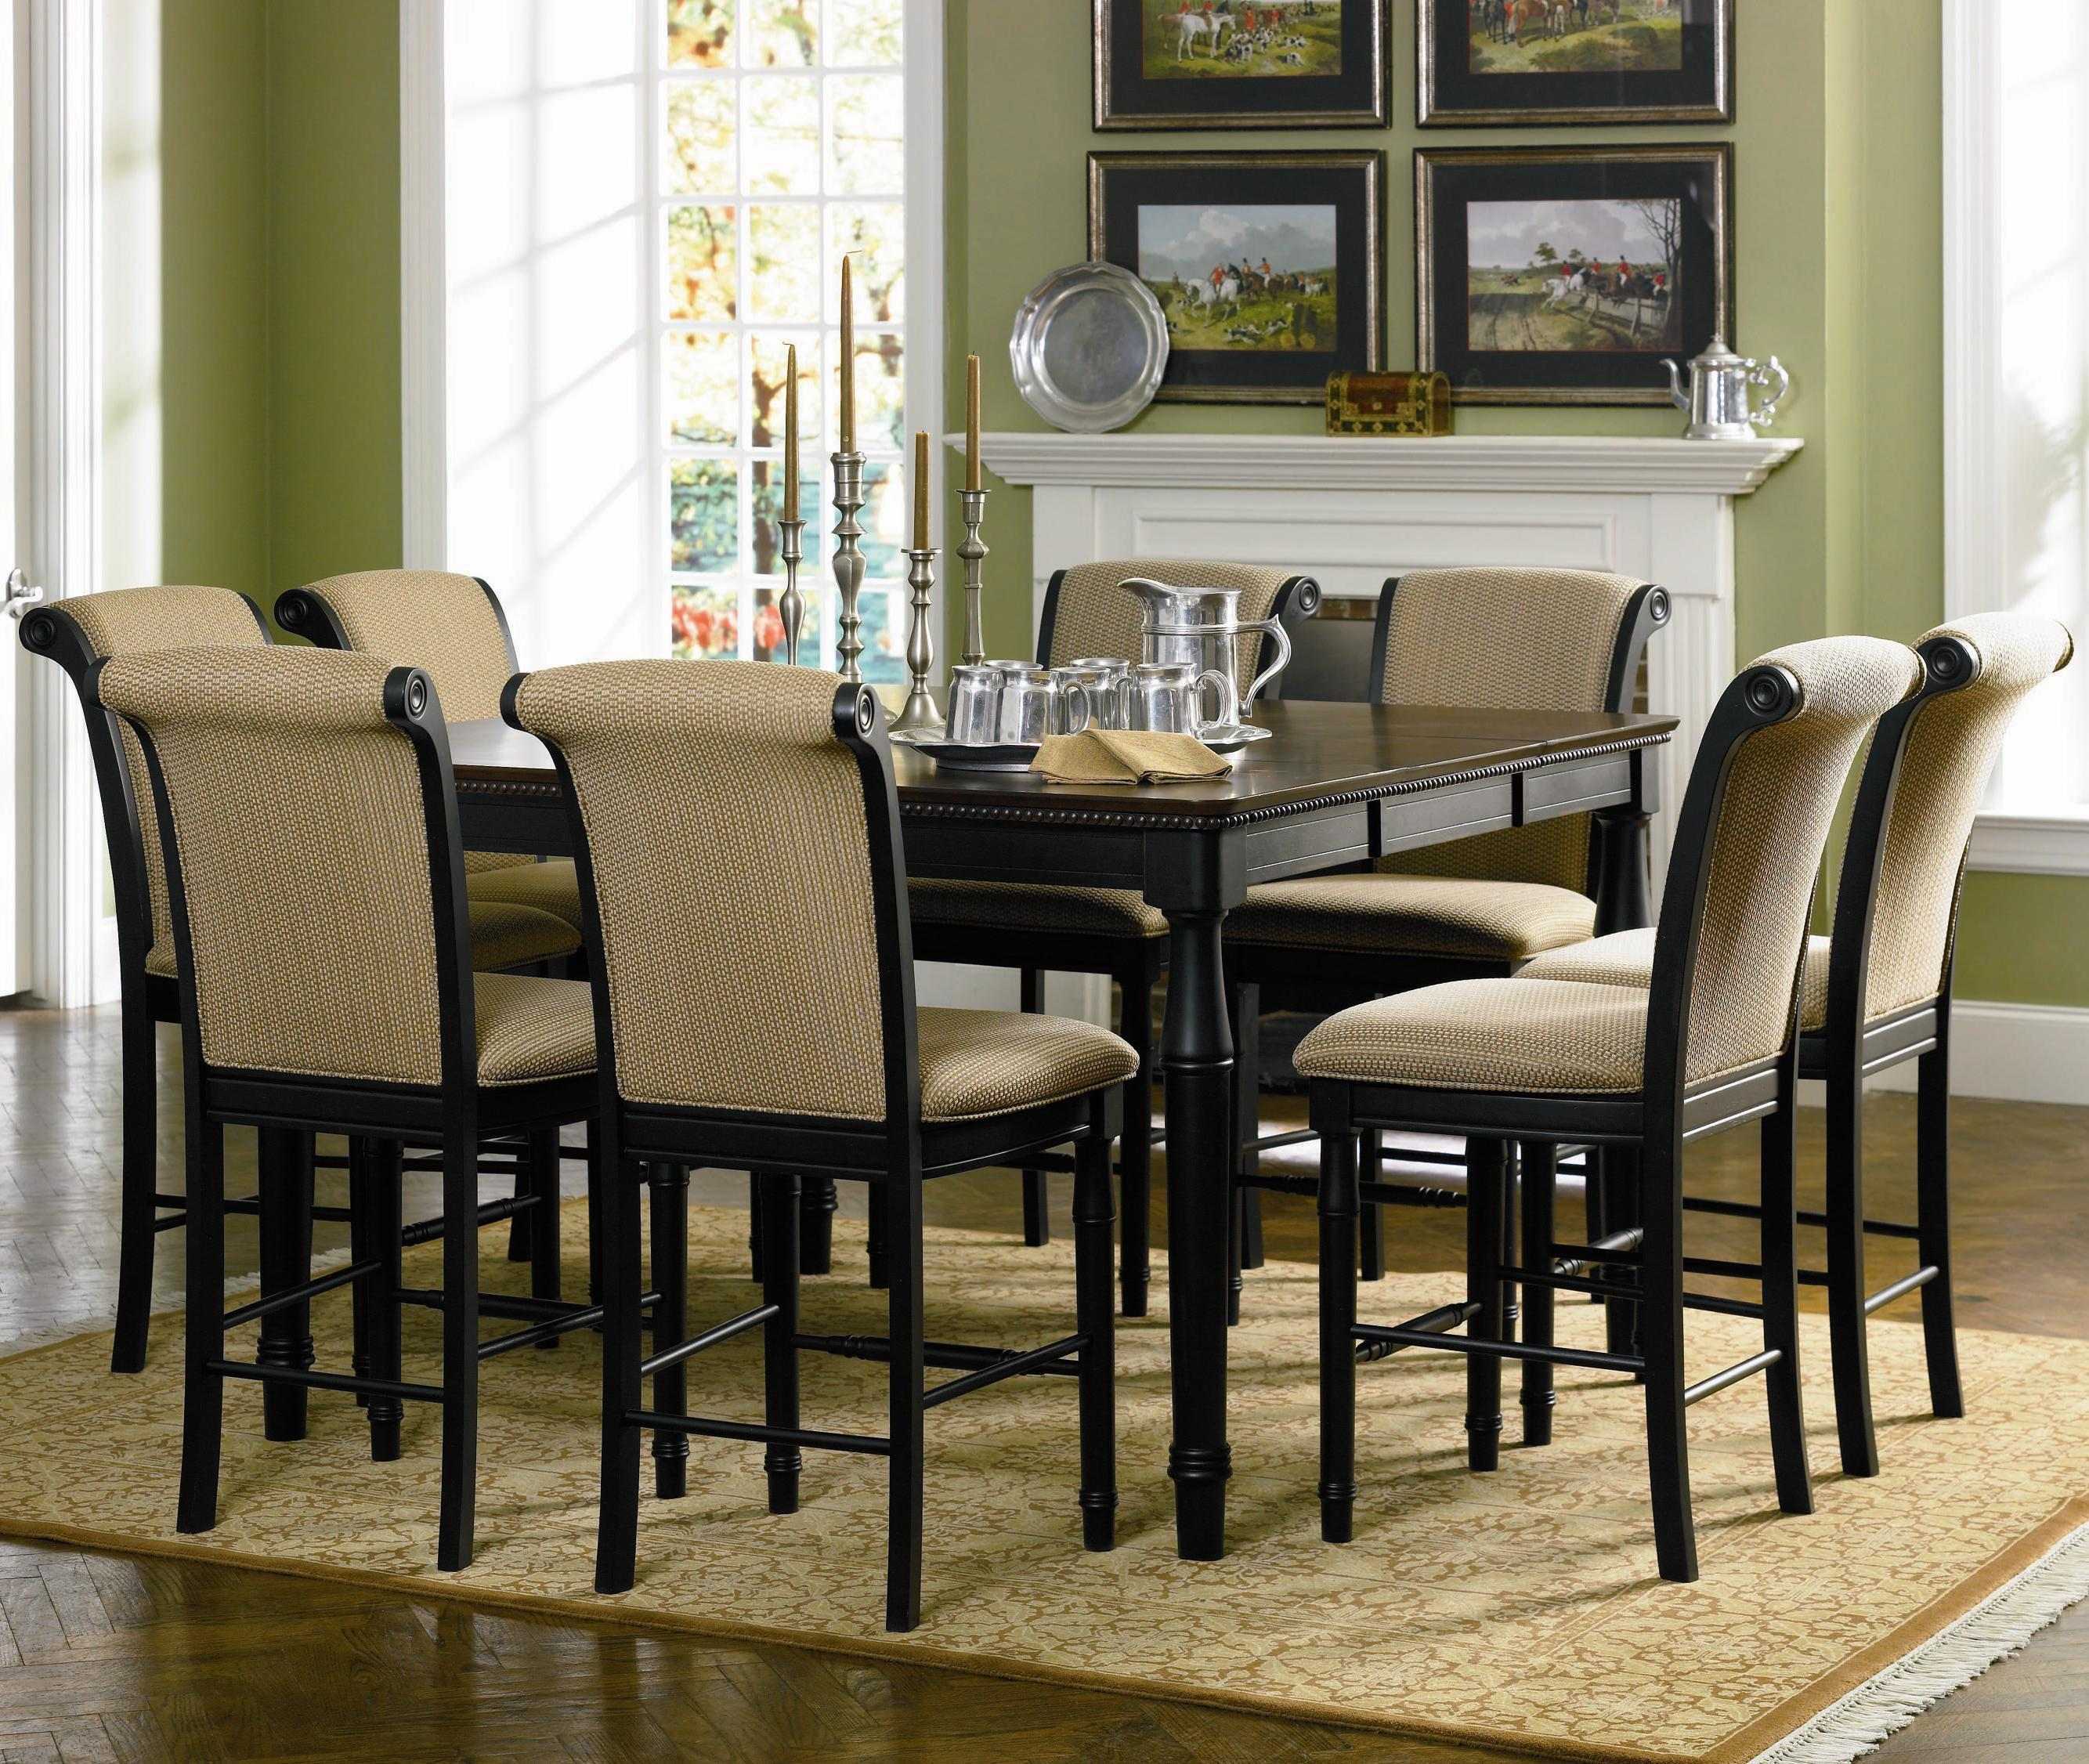 Cabrillo Cappuccino 9 Piece Counter Height Dining Set In Black Amaretto Marjen Of Chicago Chicago Discount Furniture